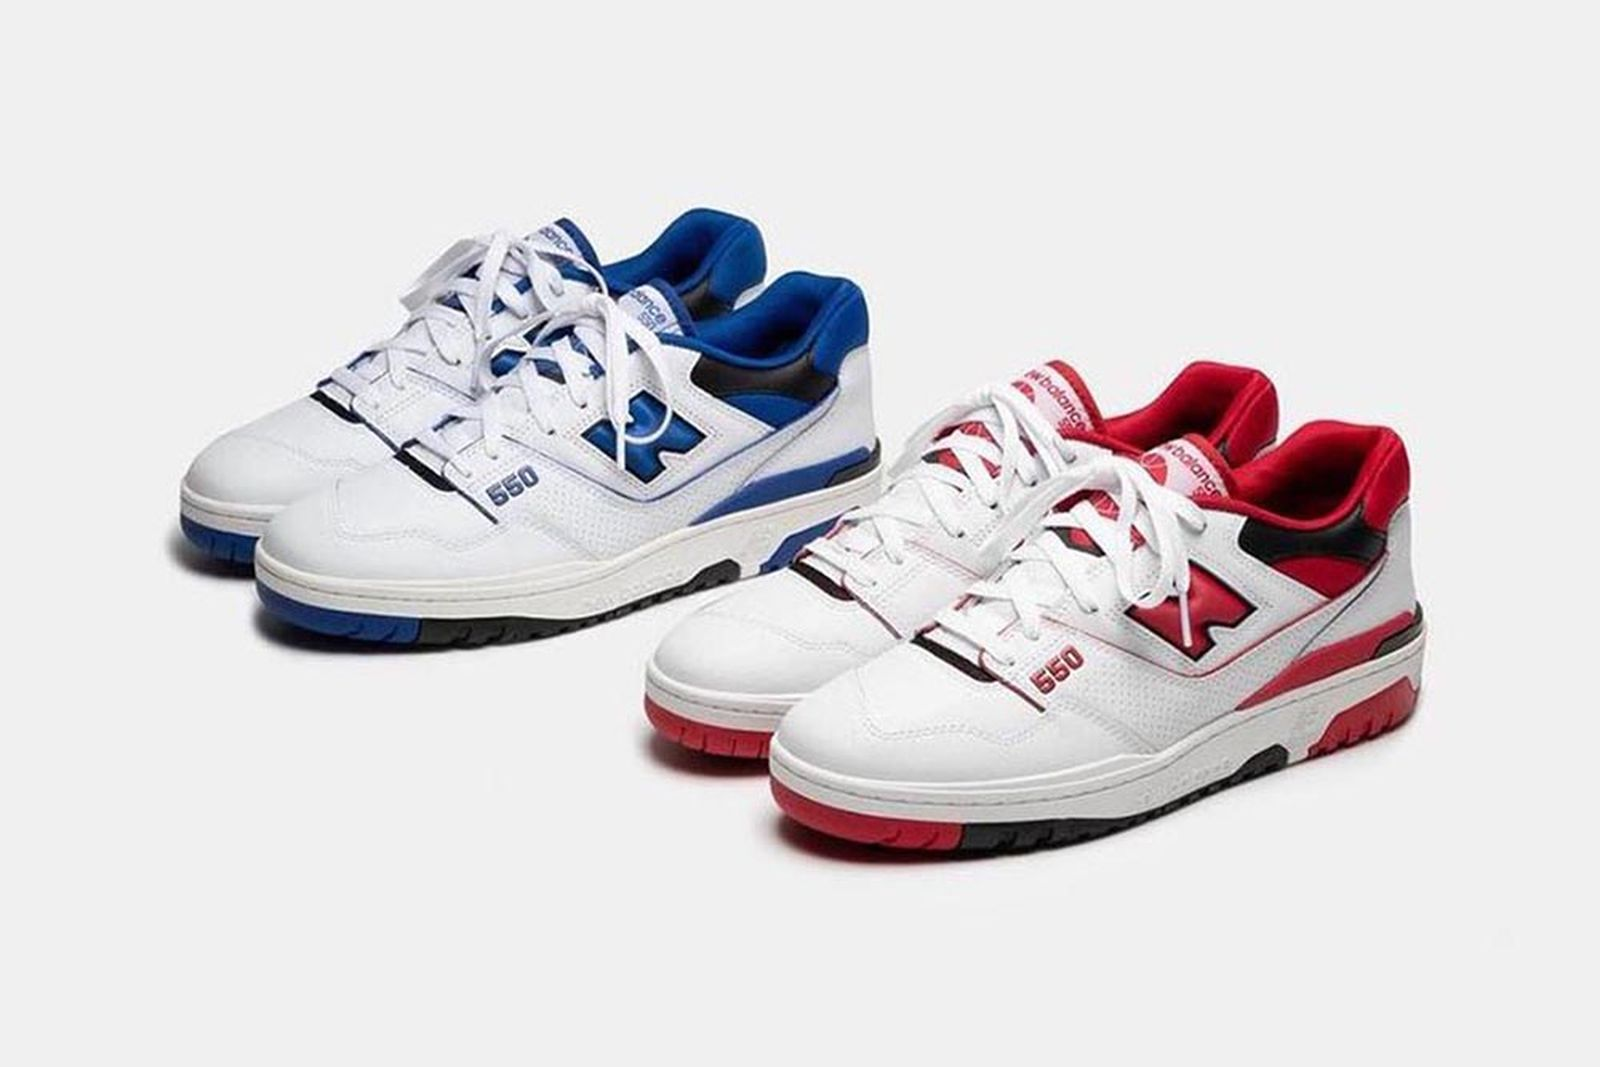 new-balance-550-gr-release-date-price-01